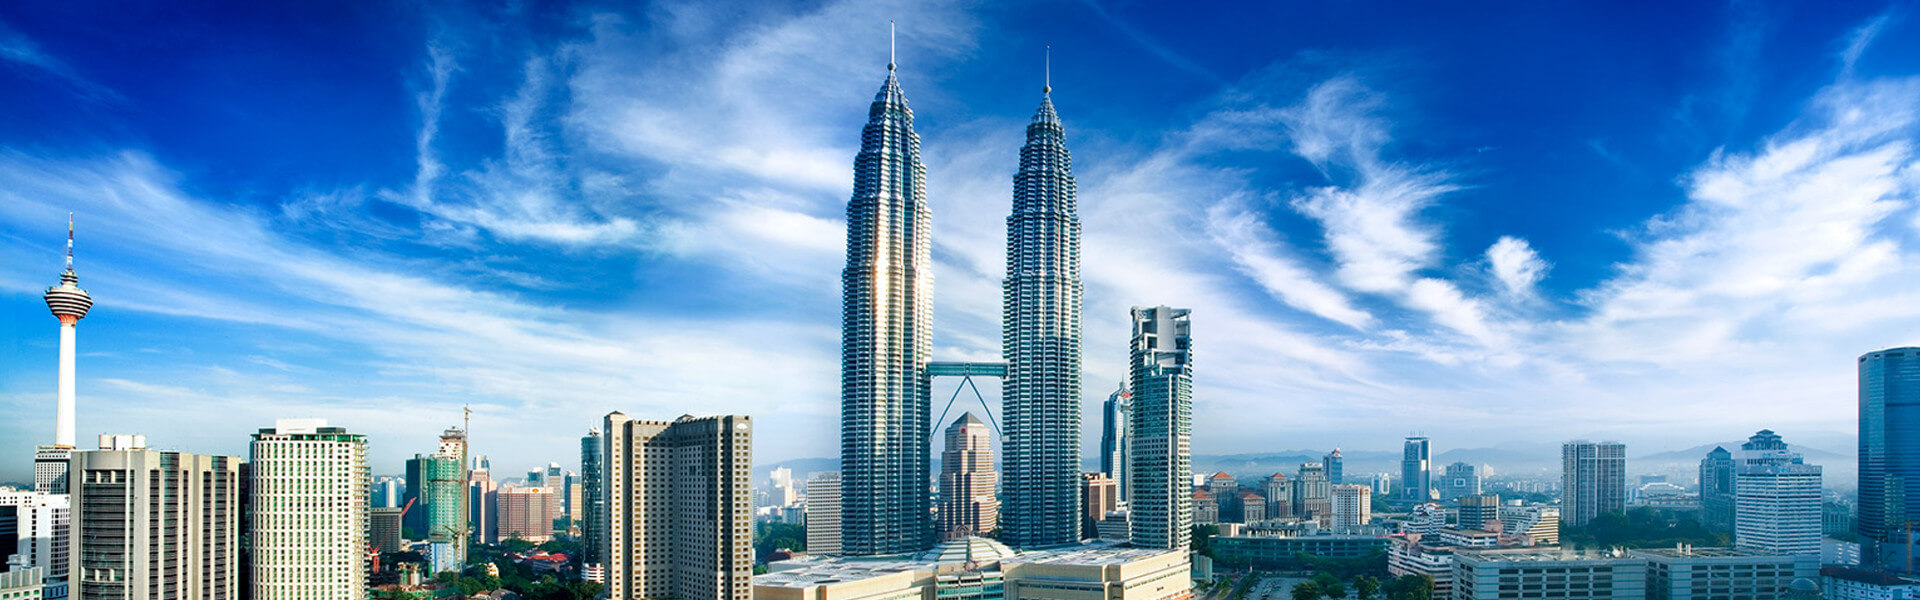 Singapore 3 Nights 4 Days Chennai Panikers Tours And Travels Luge Ampamp Skyline 2x